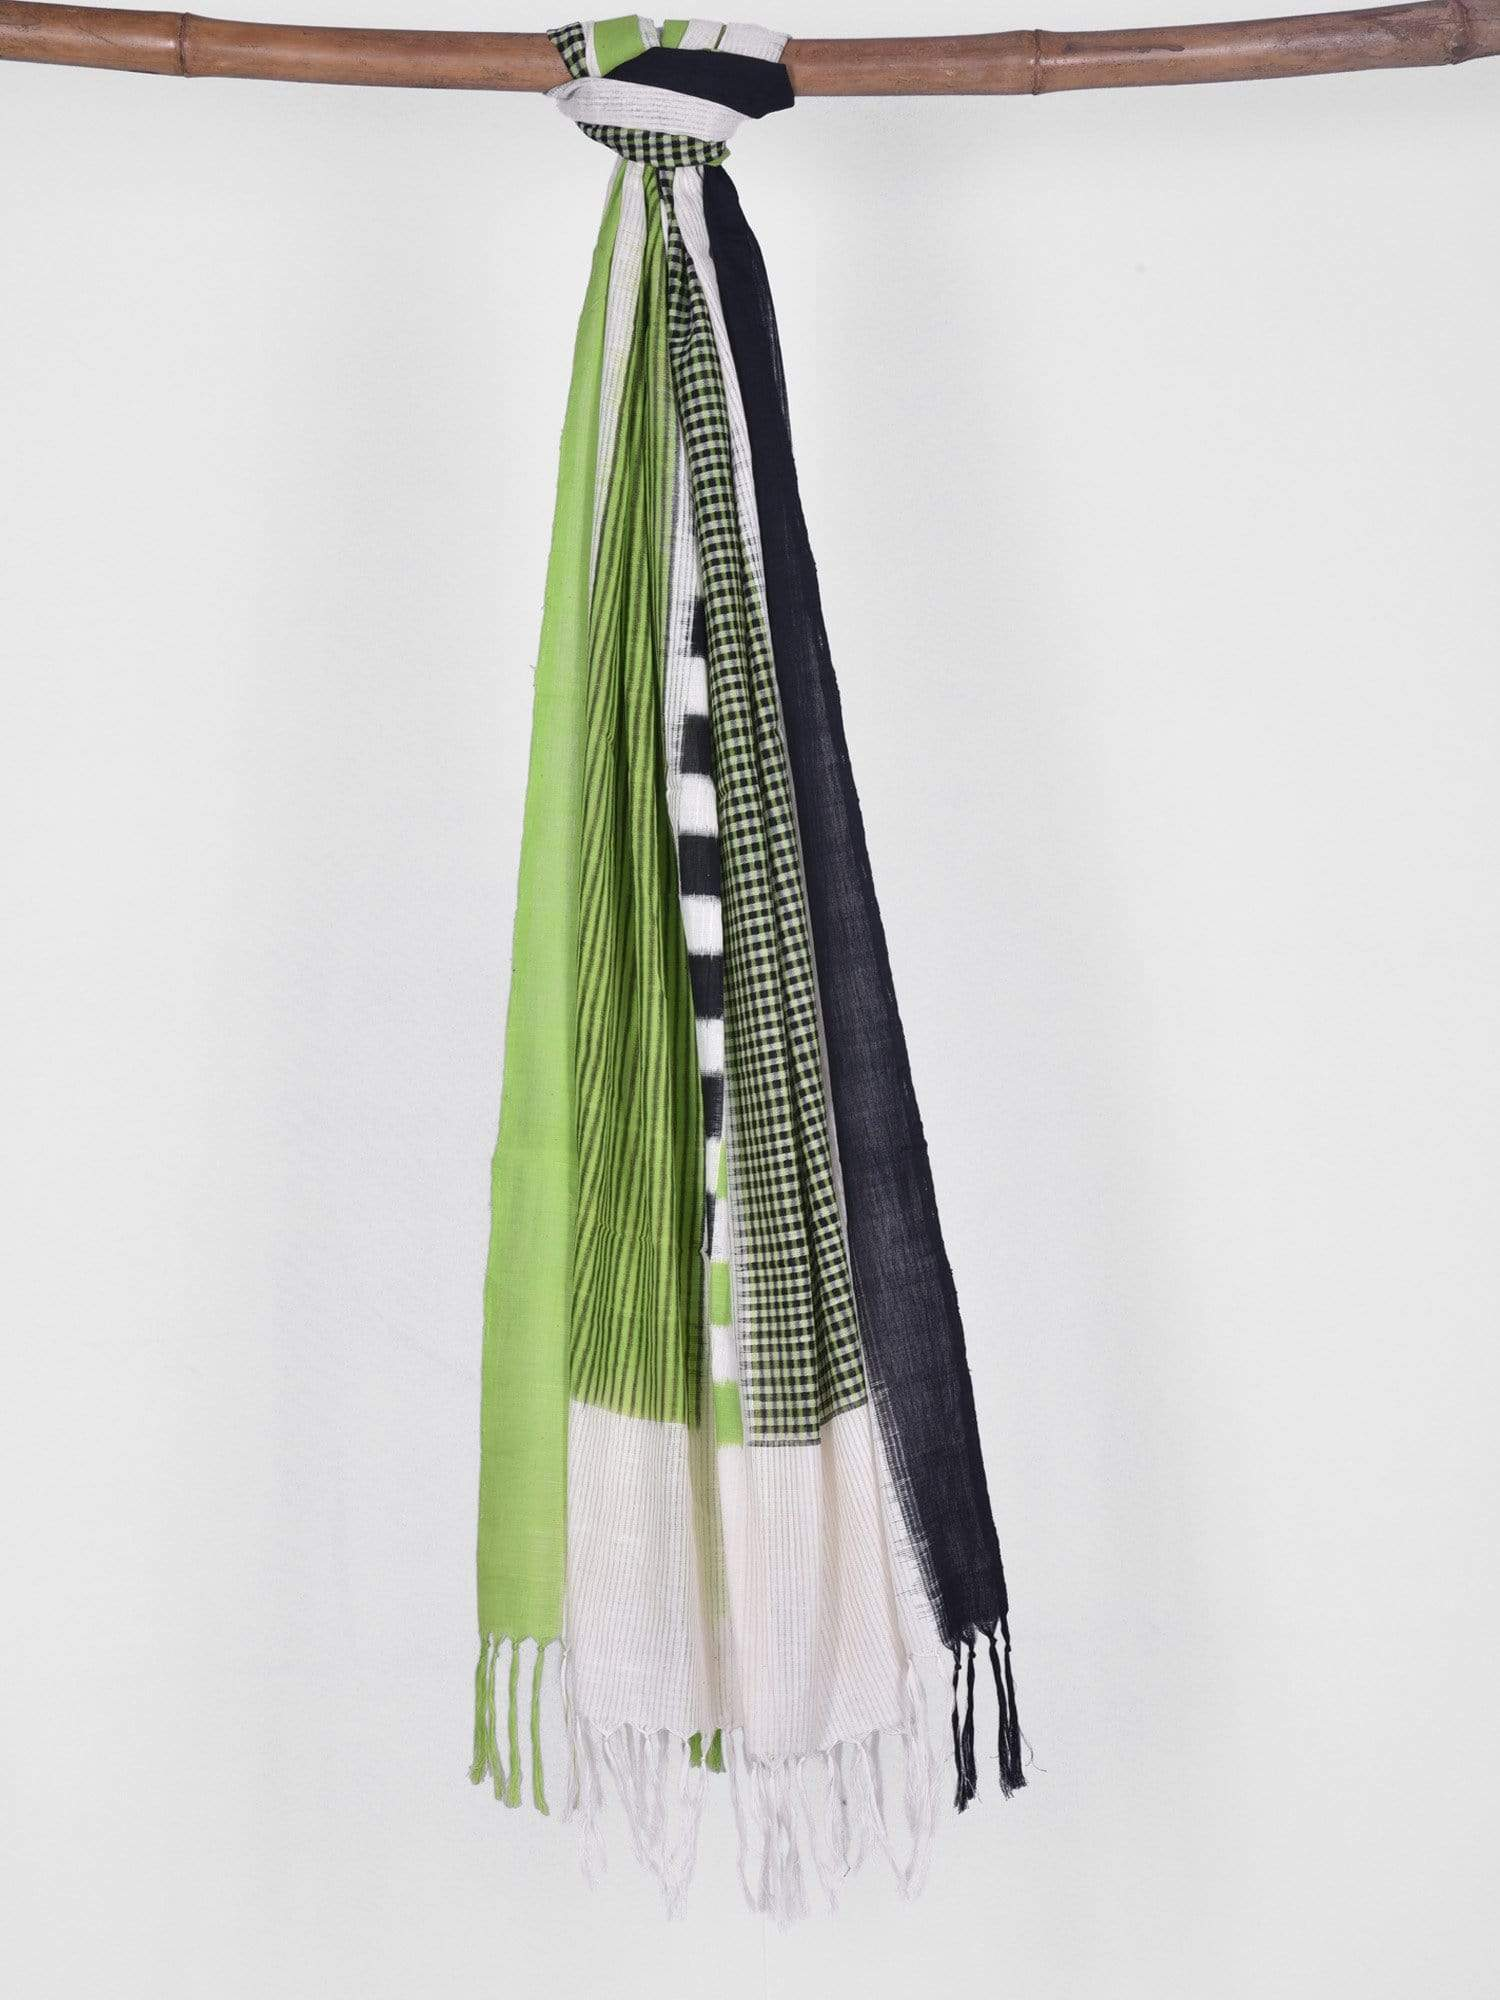 Green and Black Pochampally Ikat Cotton Handloom Dupatta with Middle Checks ds1219